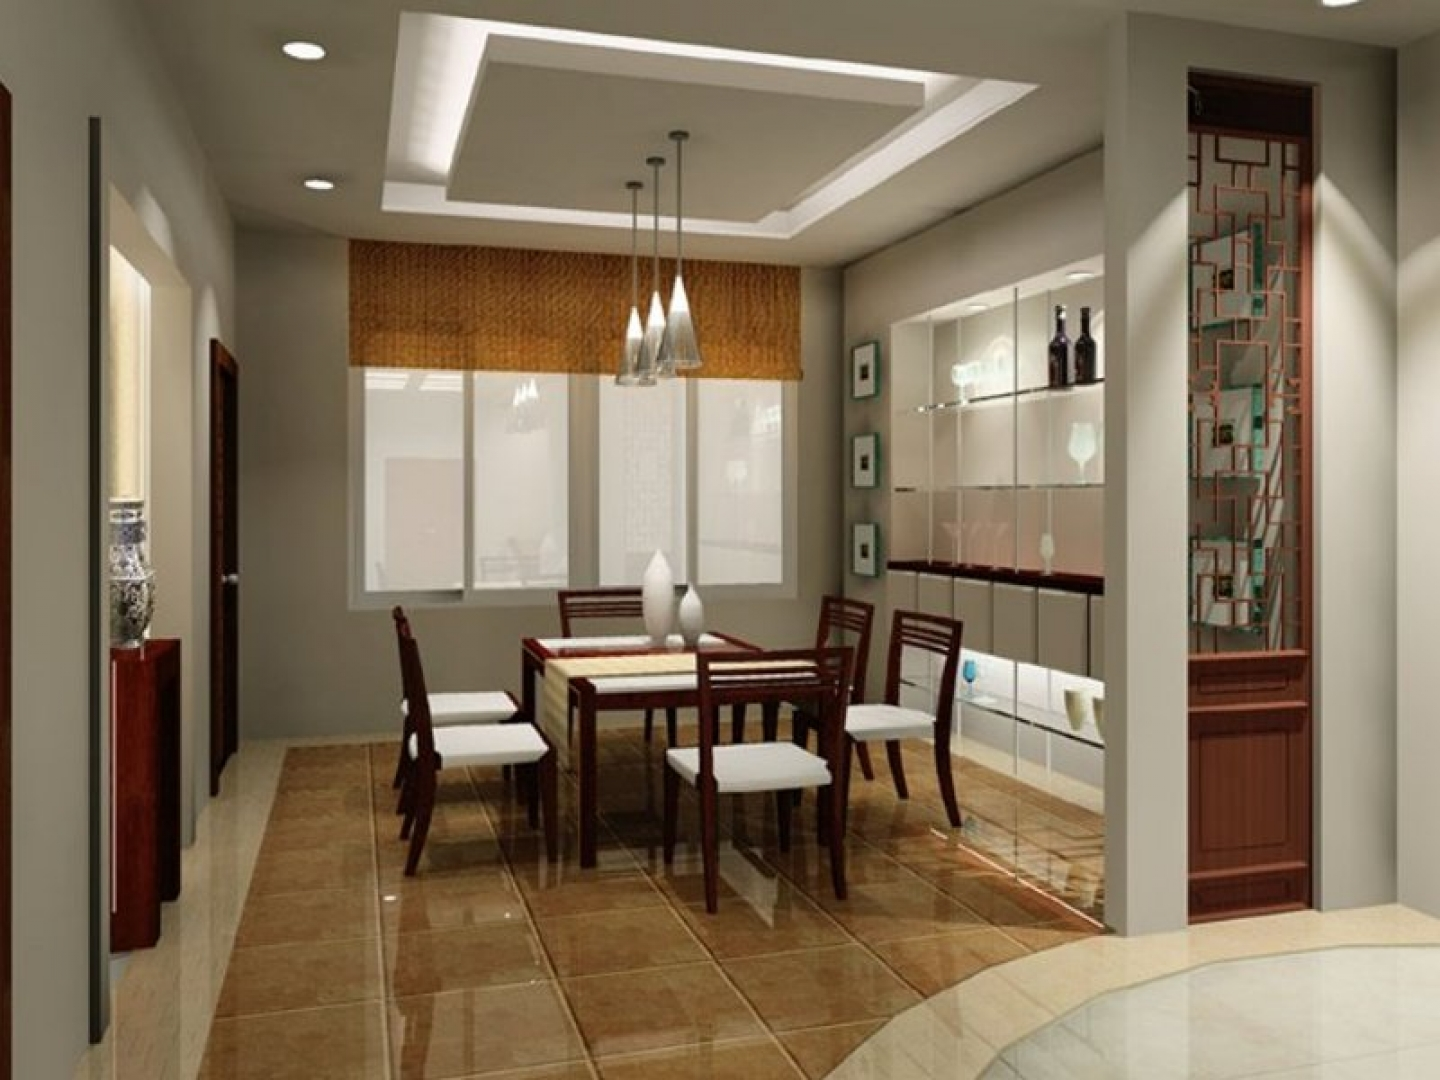 Modern small dining room design ideas image 5